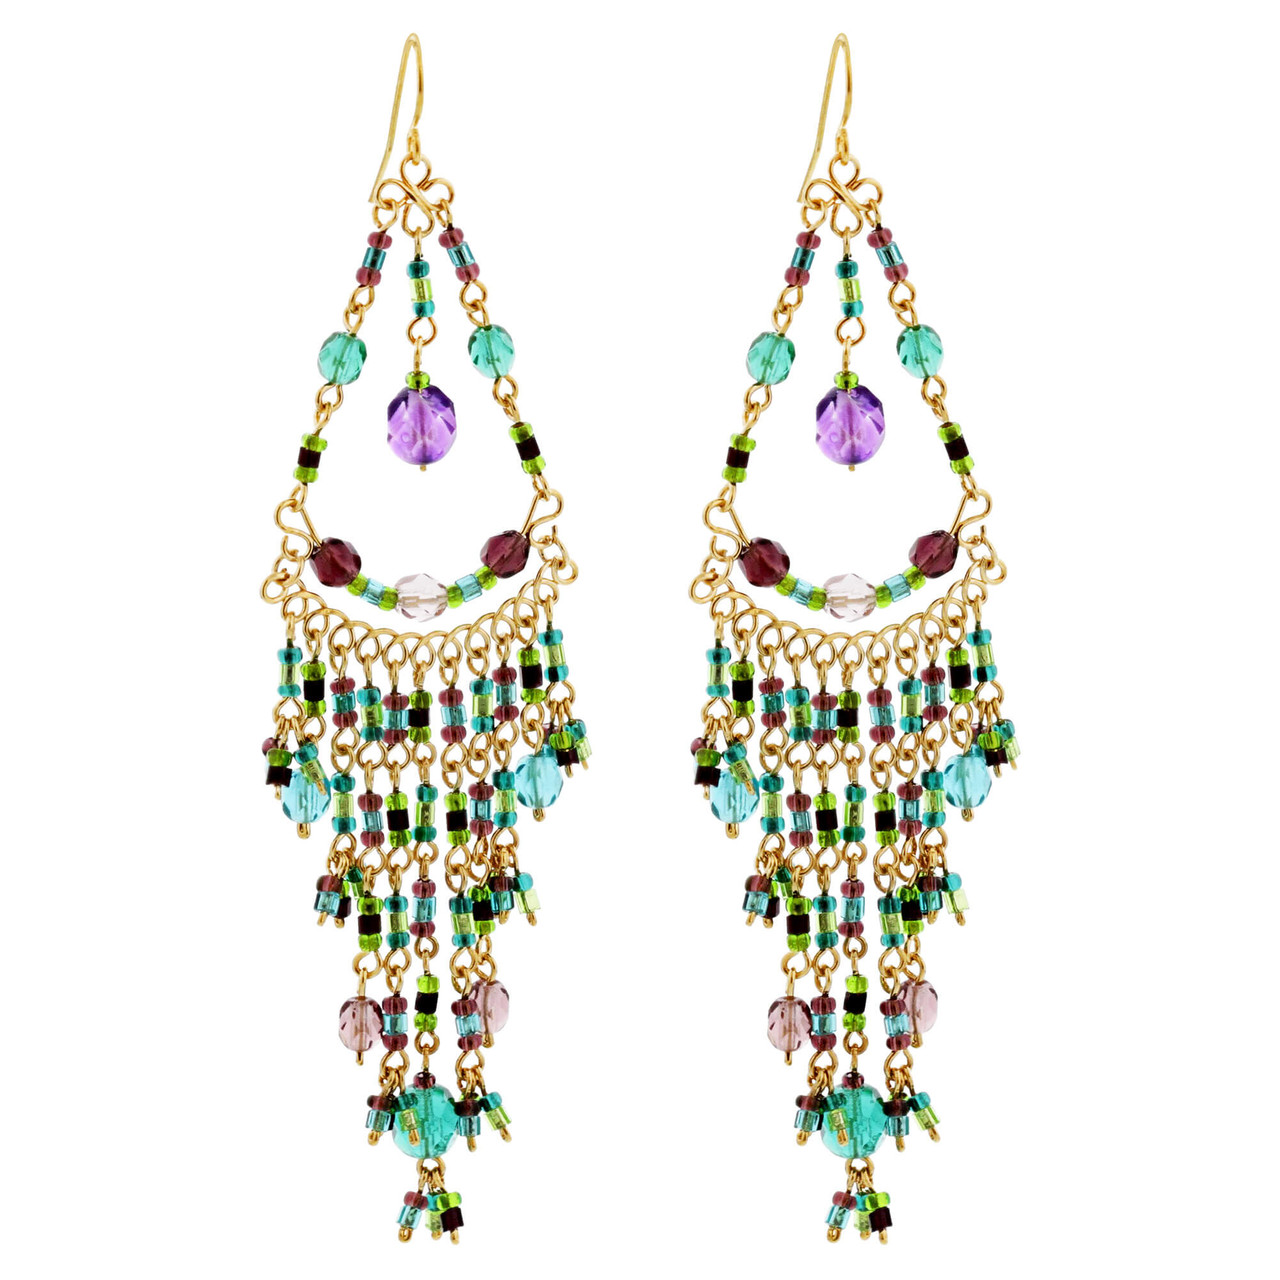 "Multicolor Seed Bead Handmade 3.75"" Chandelier Earrings with French Hook"